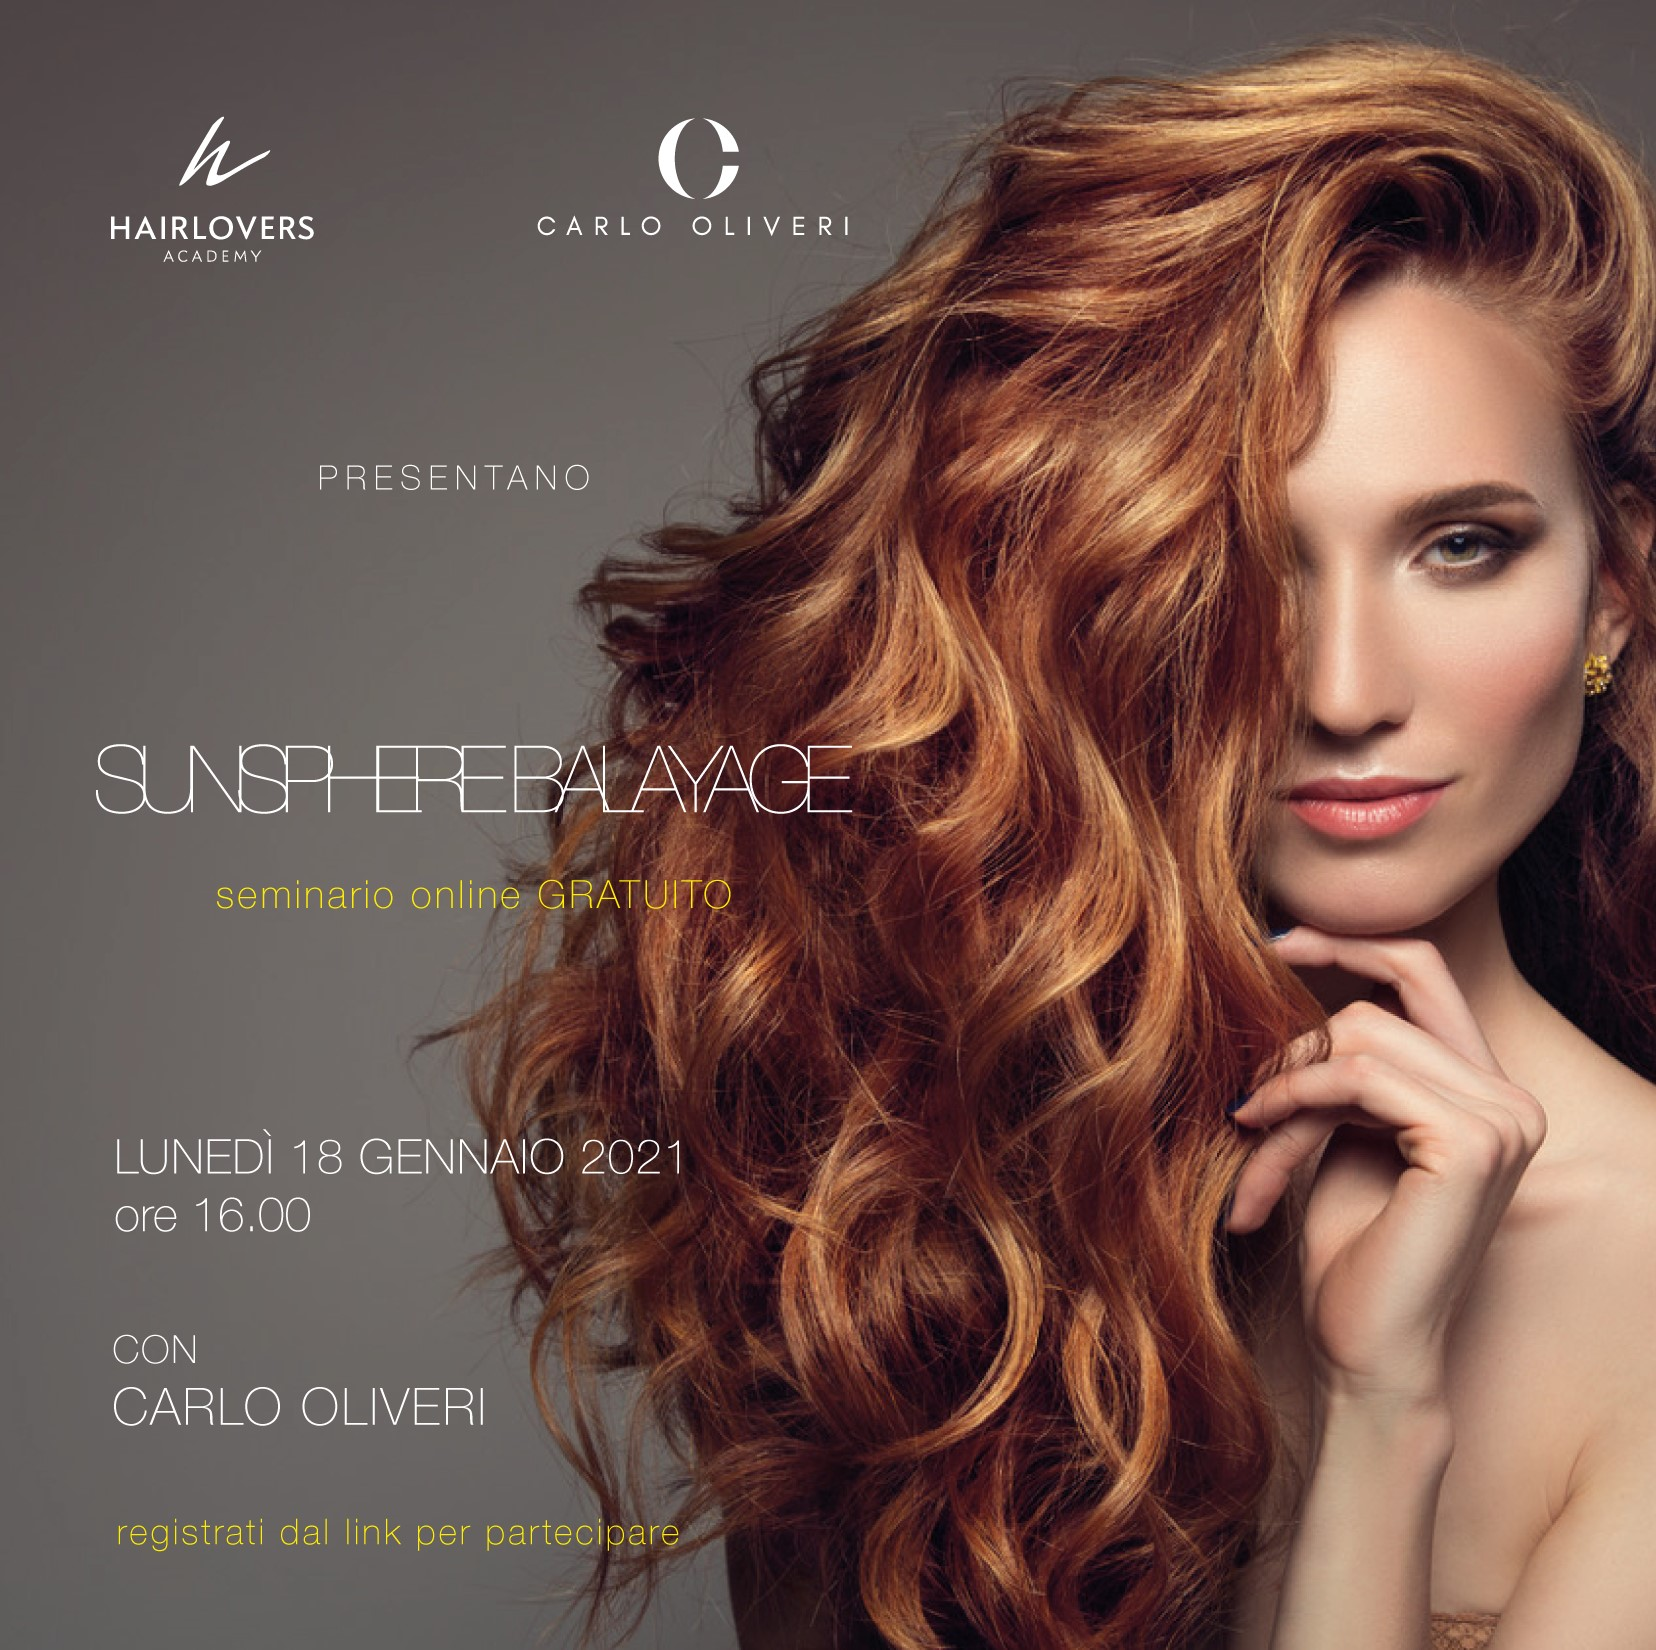 sunsphere-balayage-formazione-professionale-parrucchieri-ticino-hairlovers-academy